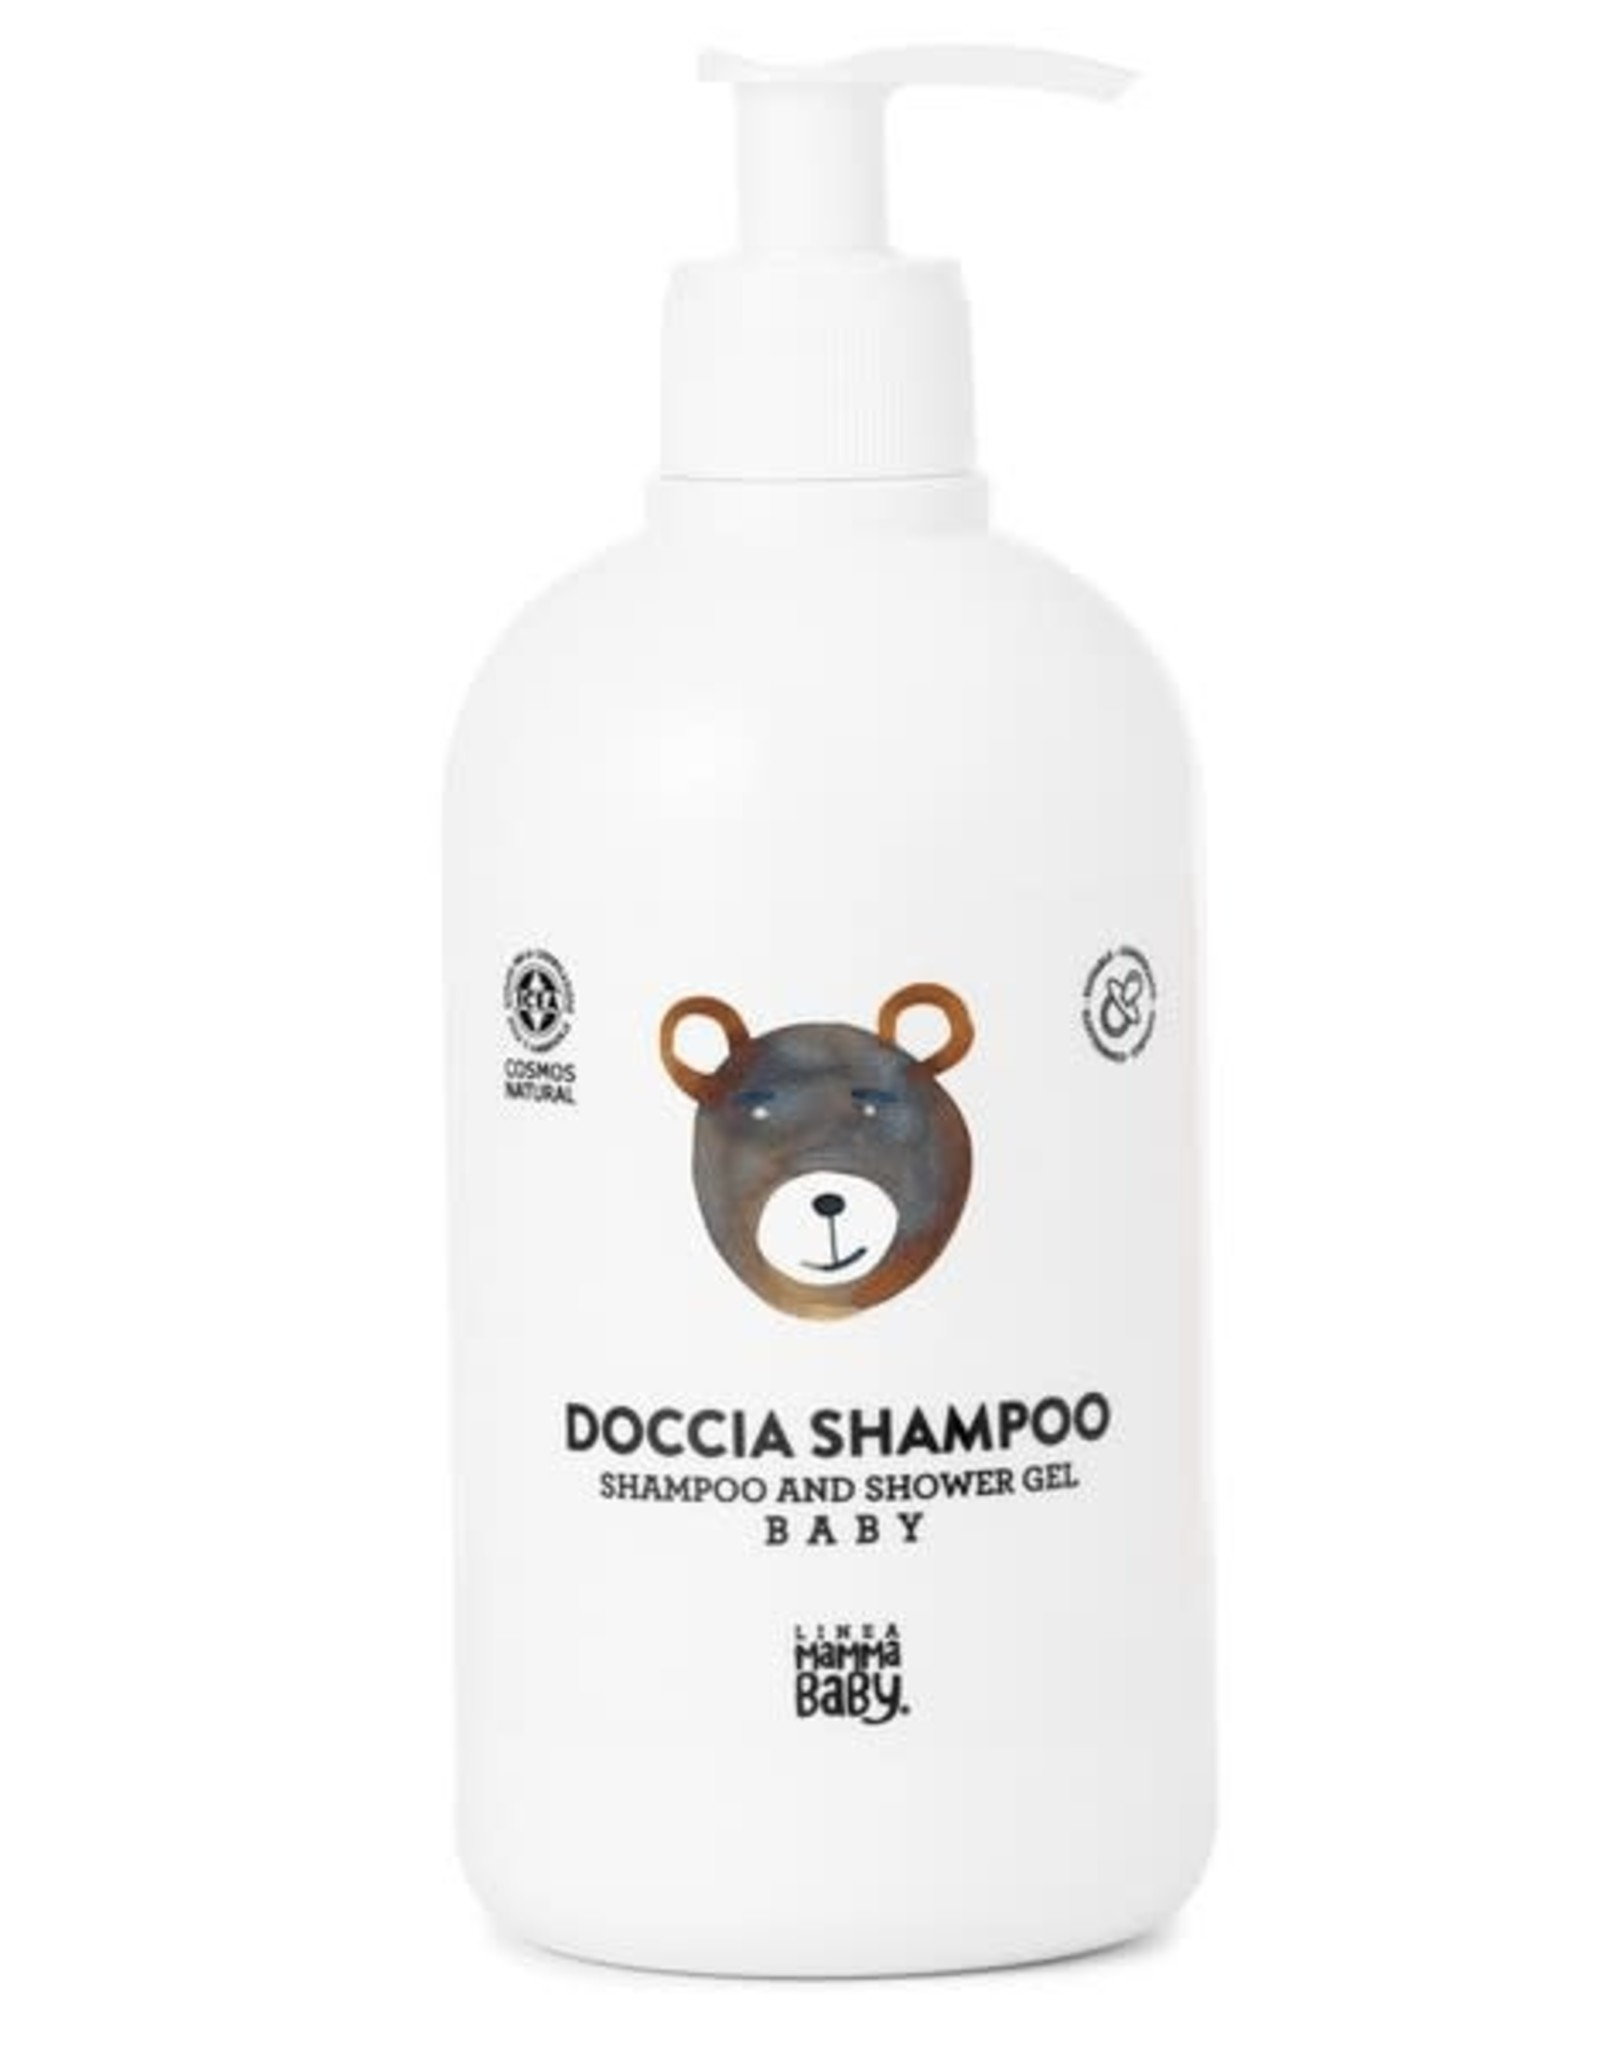 Linea MammaBaby Linea MammaBaby Babyshampoo & Douchegel Cosmos Natural (500 ml)